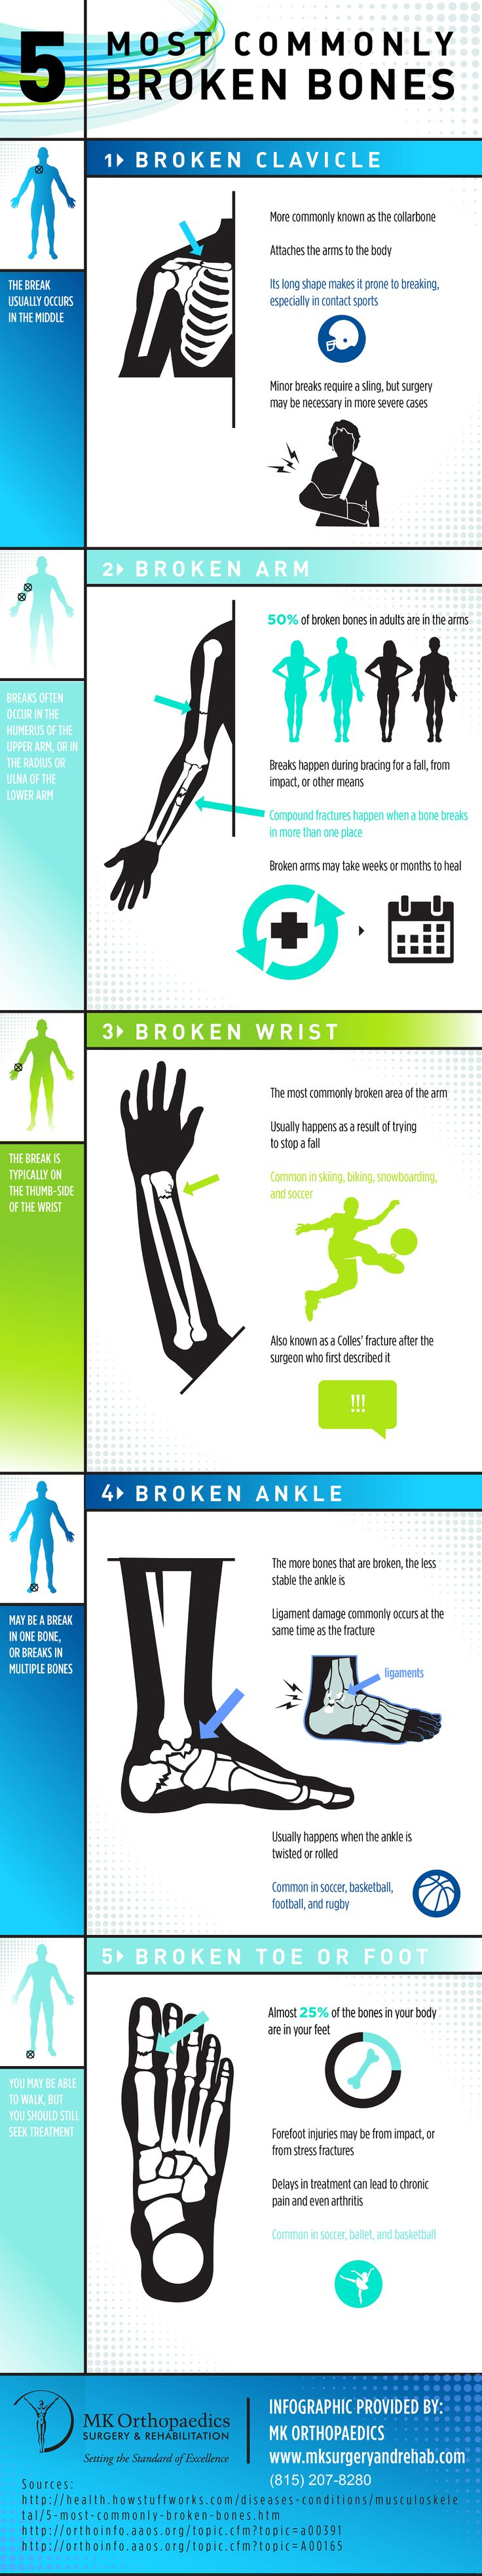 Infographic of the 5 Most Commonly Broken Bones. Did you know that 50% of broken bones in adults are in the arms? #medicine #science #sports #heath #emergencies #bones #fractures